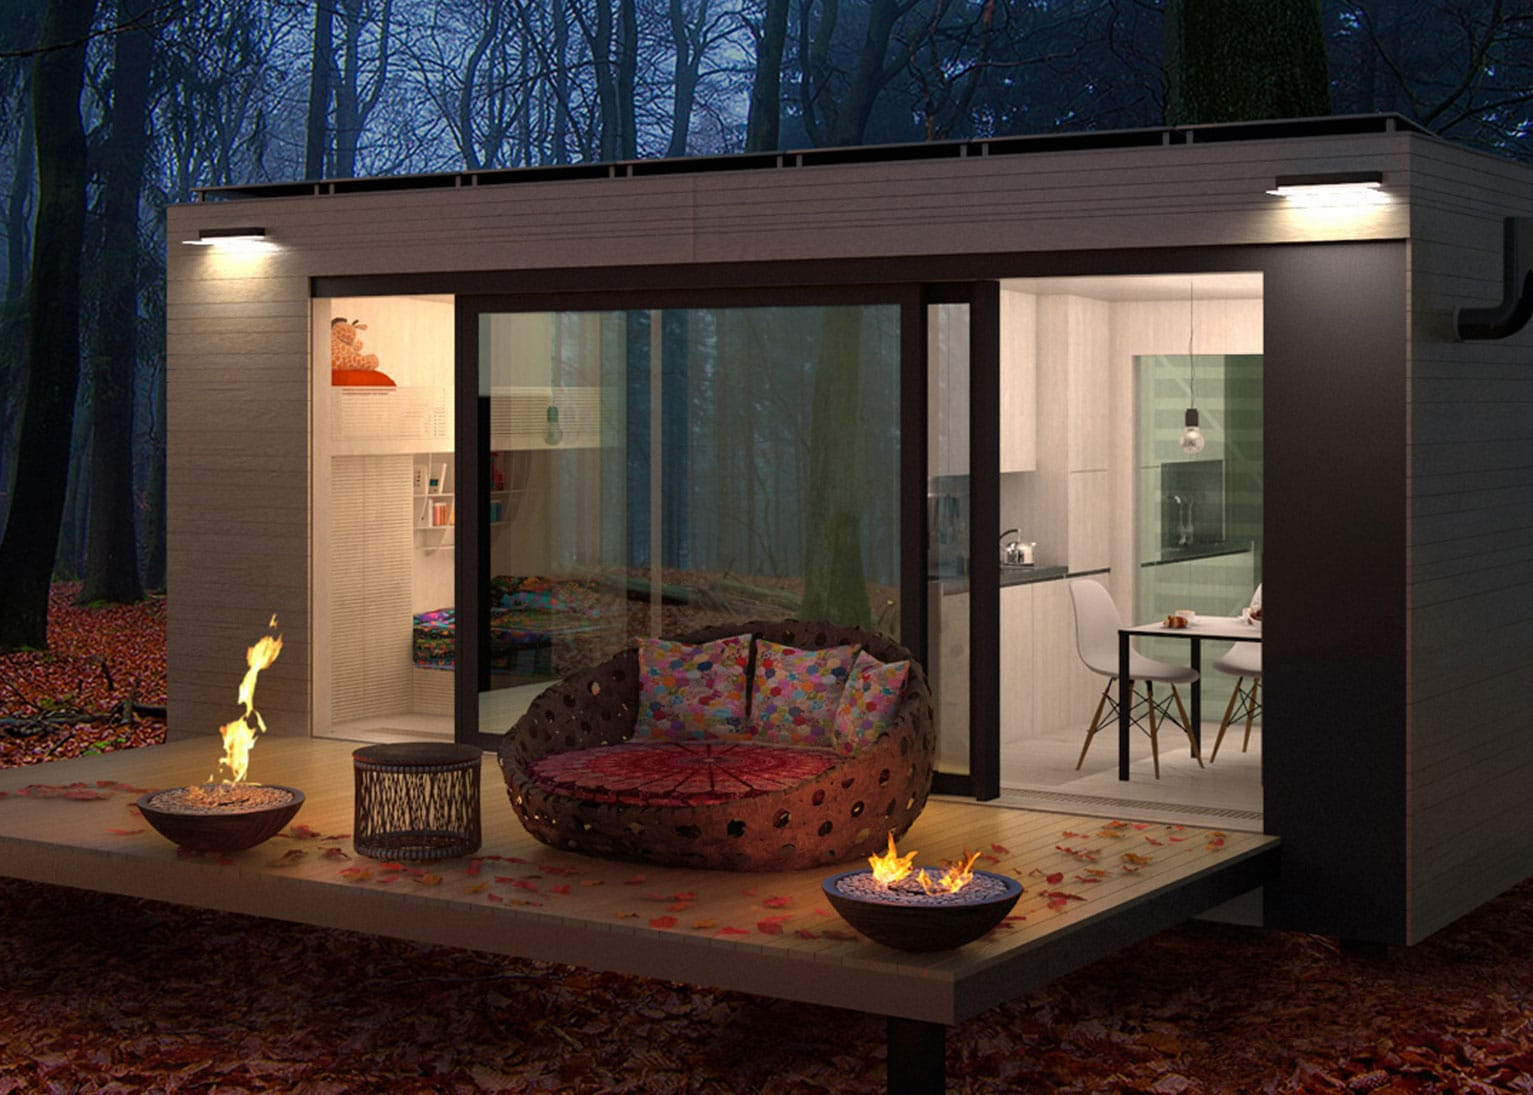 Futteralhaus, Tiny House, Tiny Home, Review